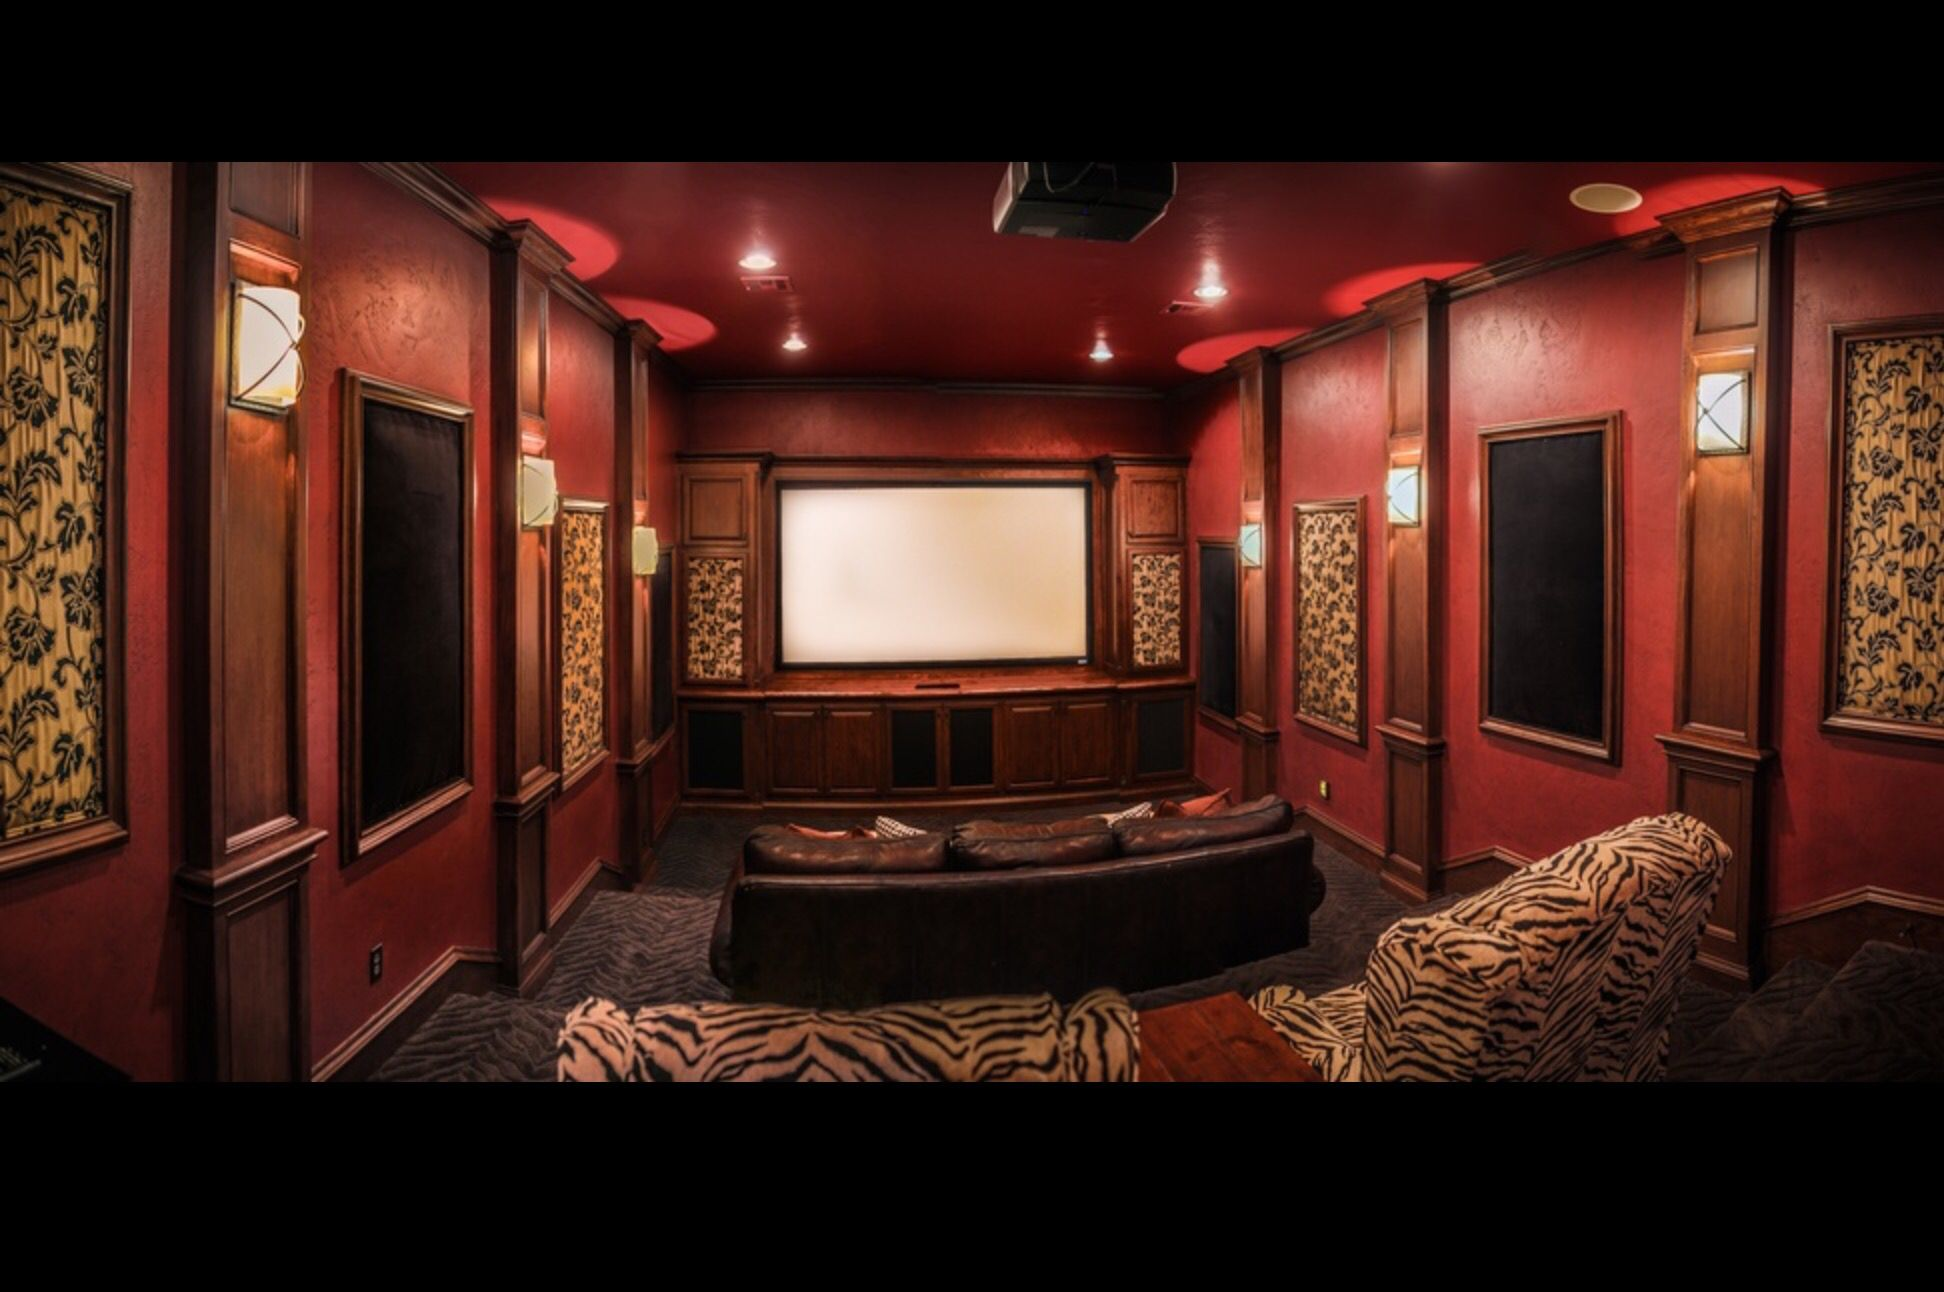 Fancy home theater room with animal print and dark crimson red ... on fancy pool table, fancy wine cellar, fancy home tours, fancy cd player, fancy home cinema, fancy bar, fancy home photography, fancy bathroom, fancy home gym, fancy computers,